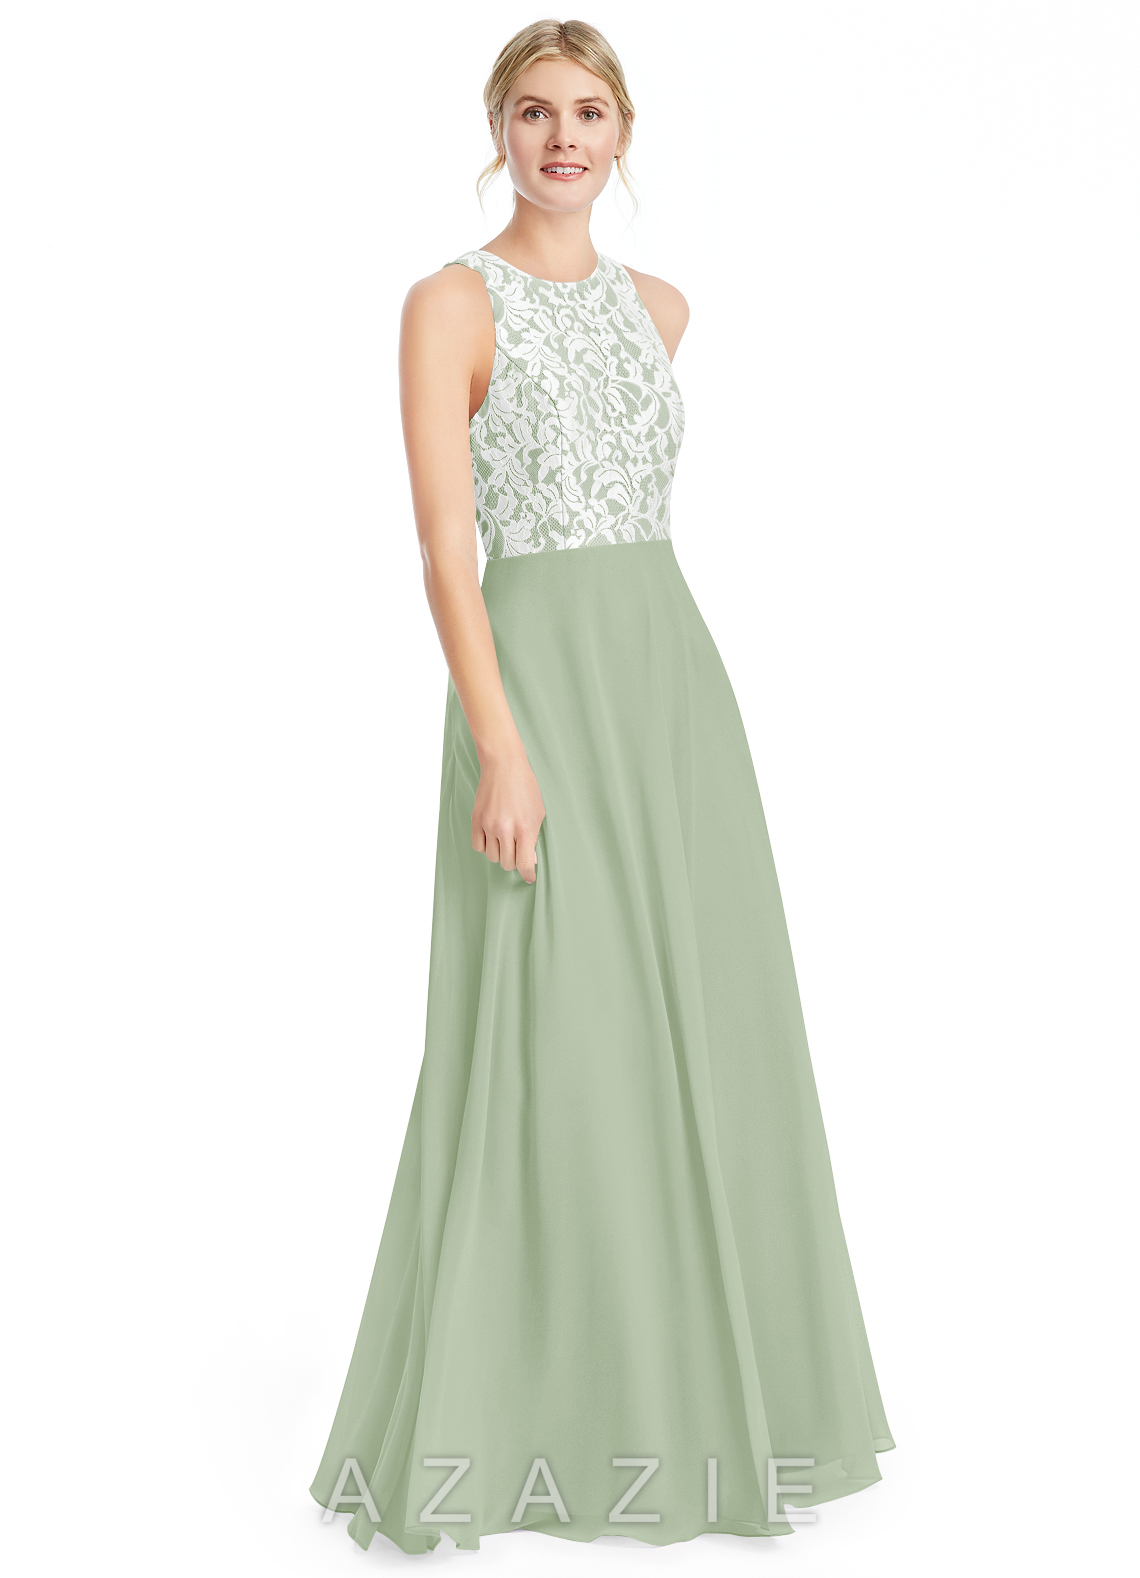 Azazie kate bridesmaid dress azazie color dusty sage ombrellifo Image collections